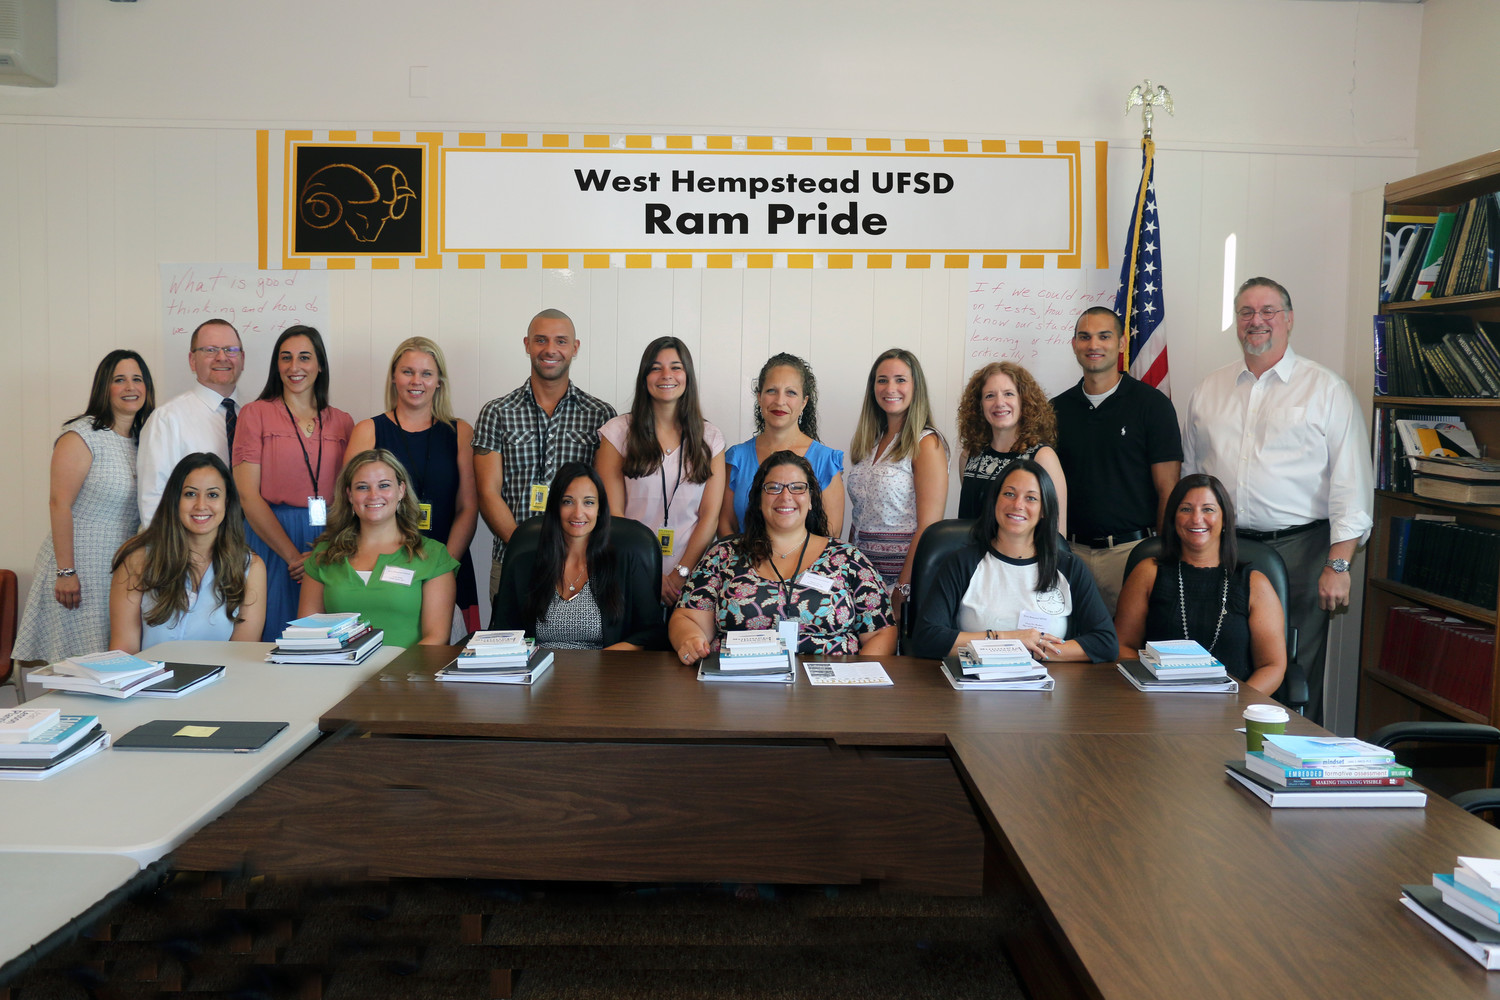 The West Hempstead School District extended a warm welcome to 14 new staff members during a two-day orientation program on Aug. 29-30.